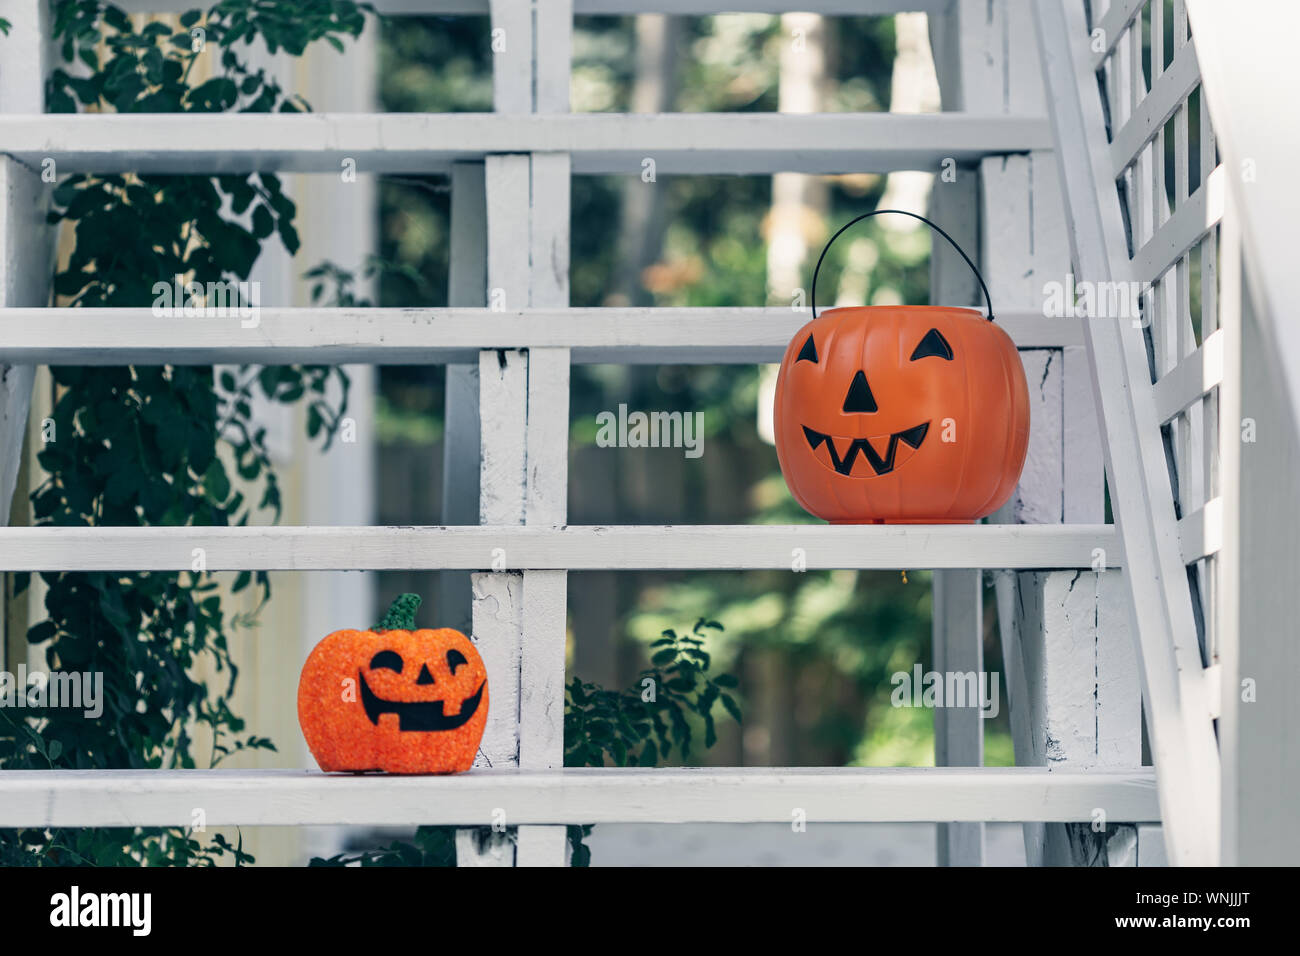 Vintage old fashioned retro Halloween outdoor decorations